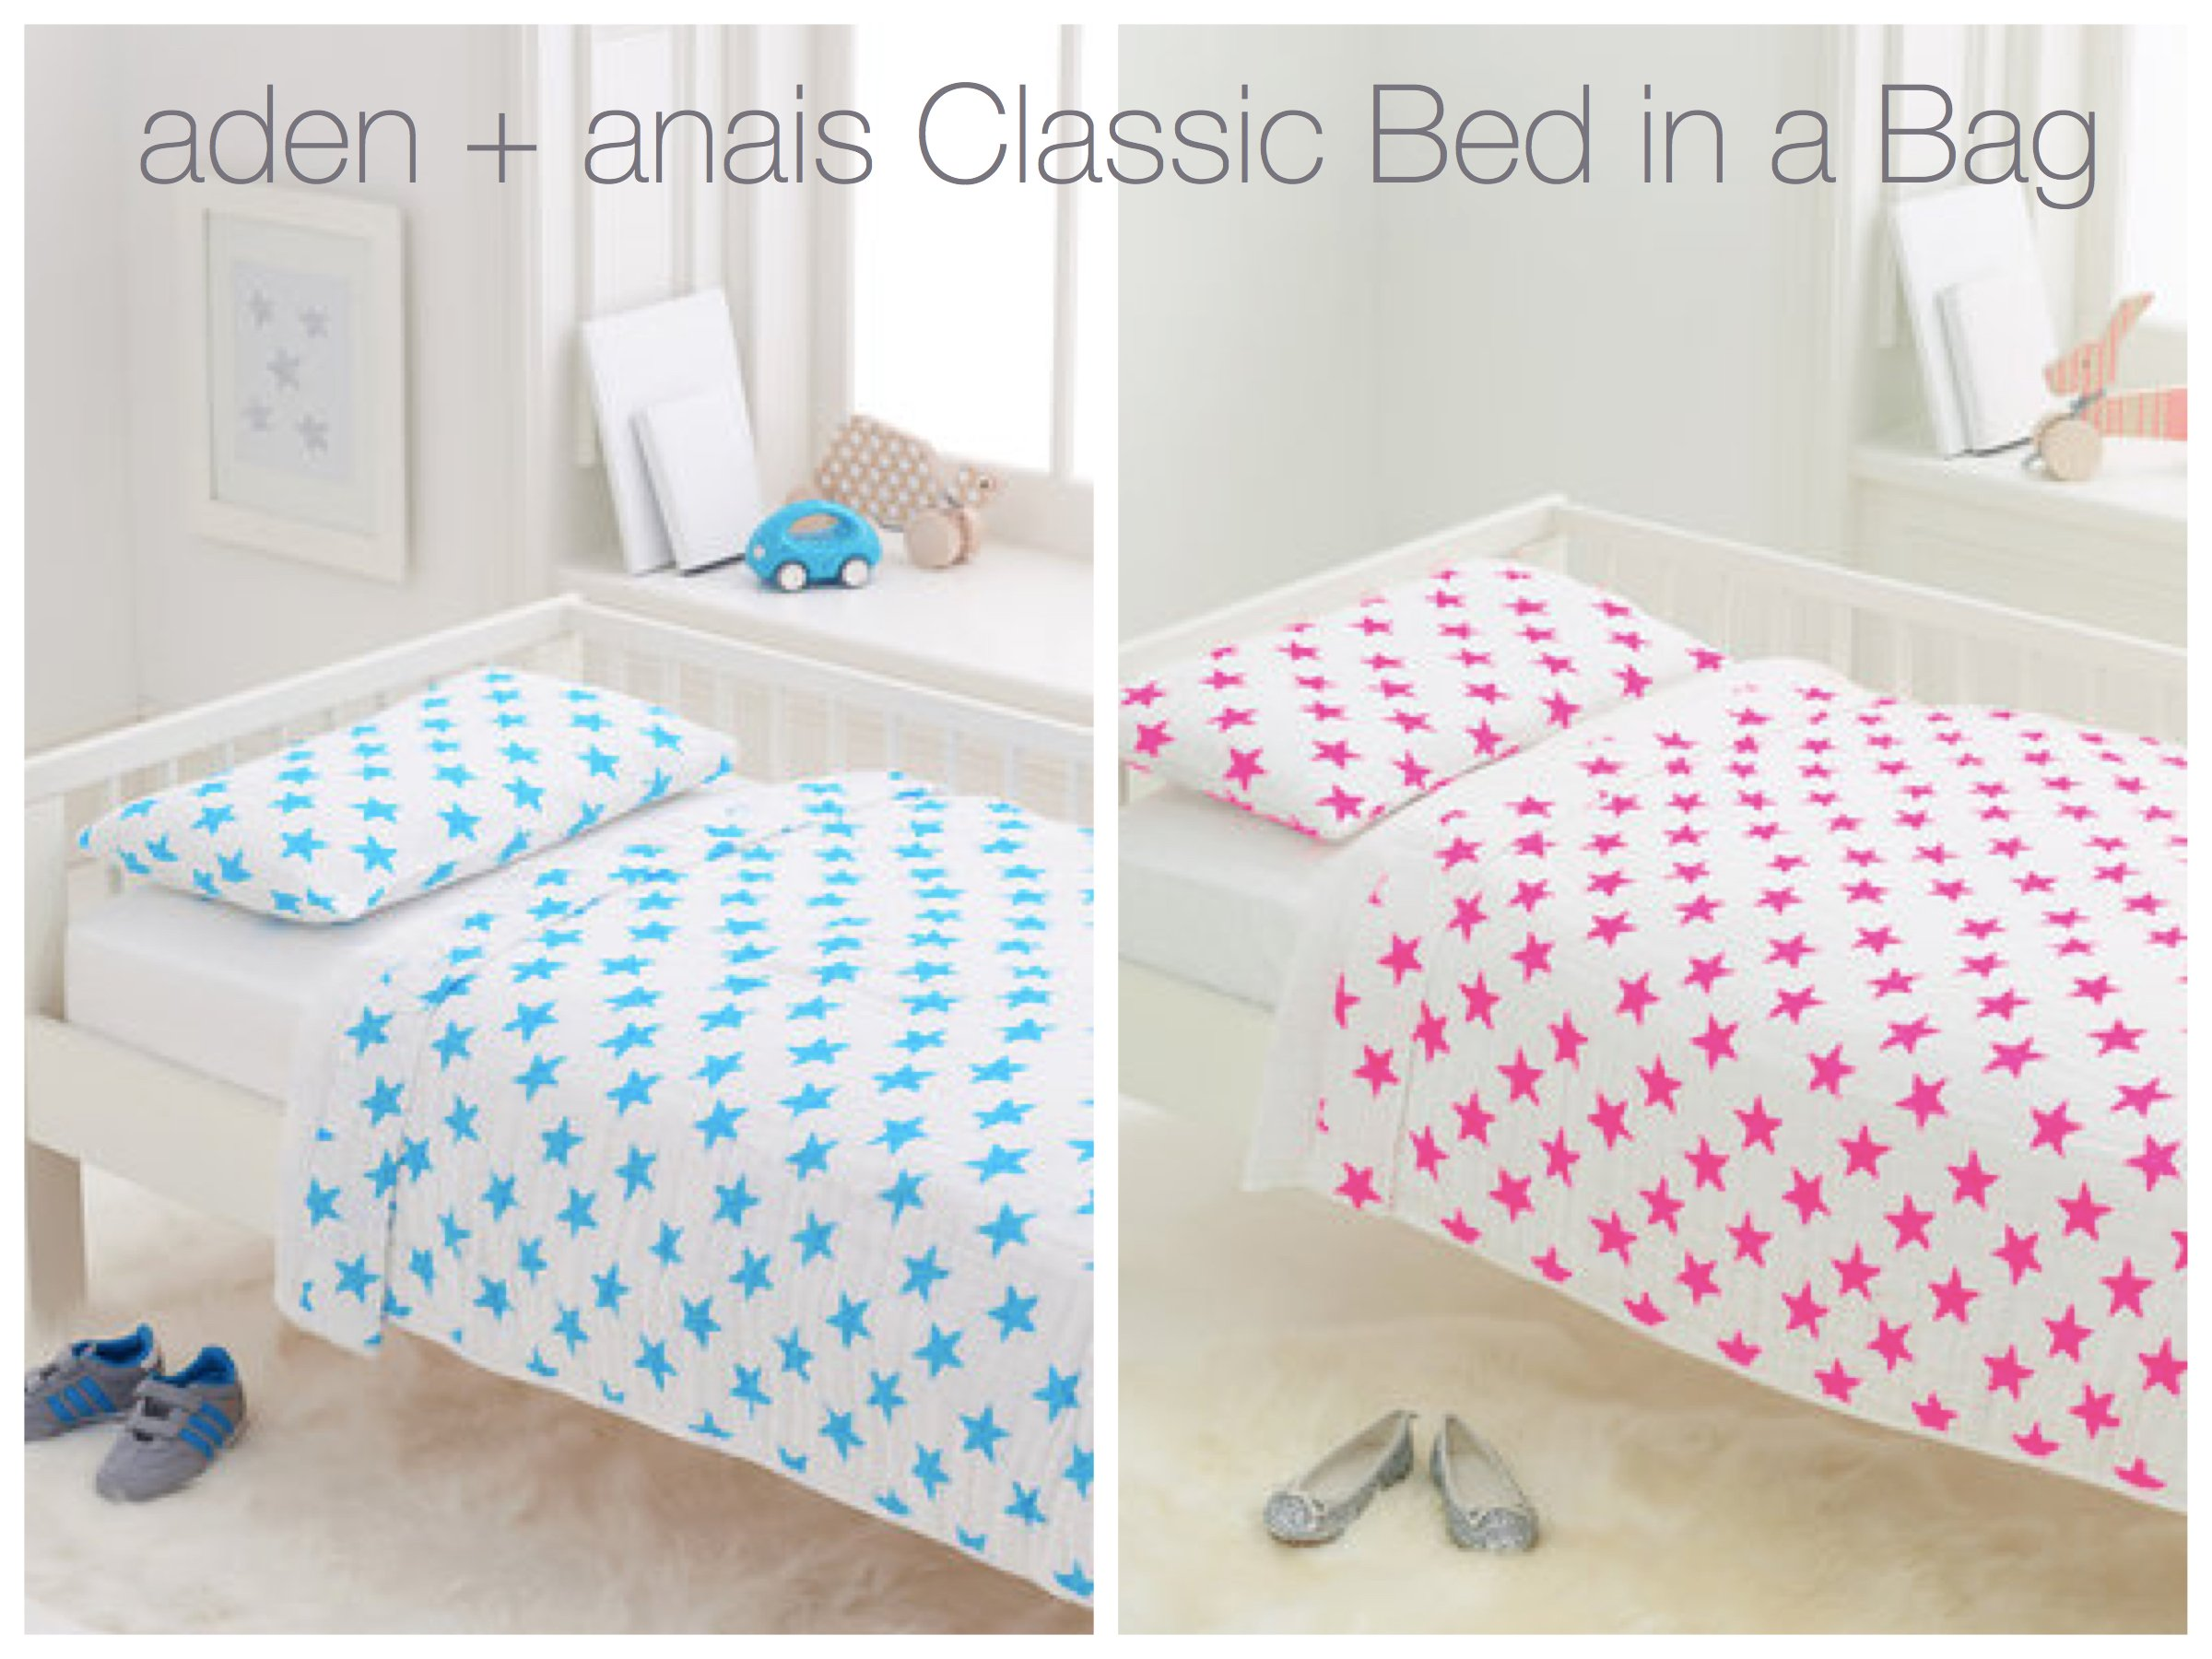 aden-anais Classic Bed in a Bag